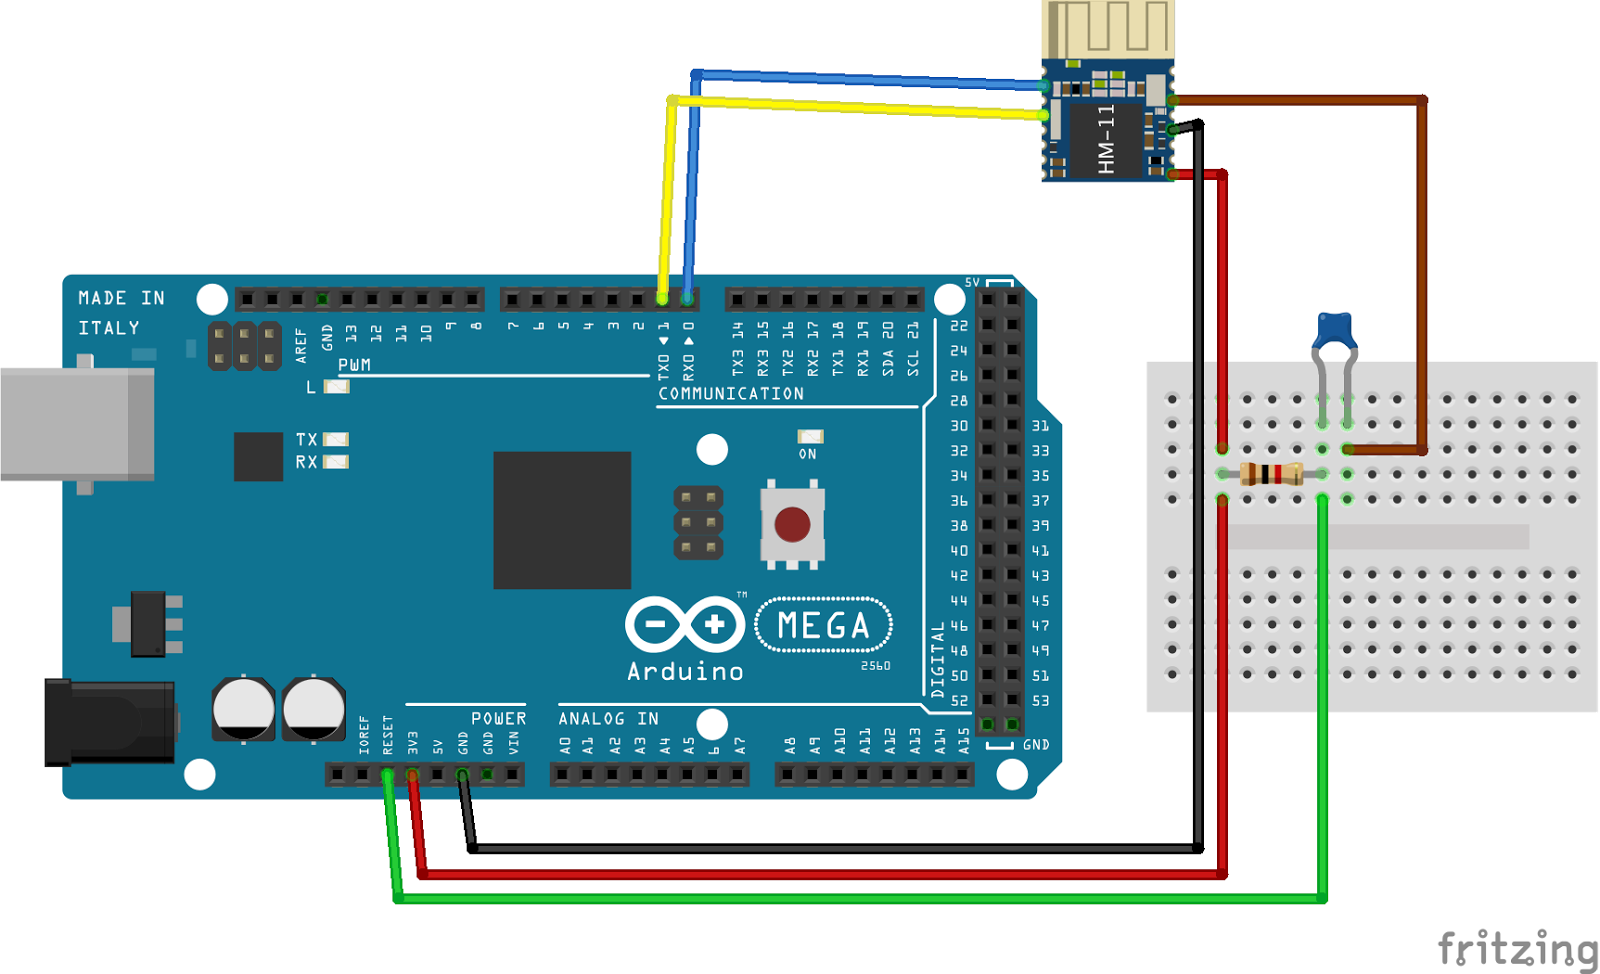 Arduino Mega 2560 Pin Diagram Rs232 To Rs485 Wiring A Capacitor Get Free Image About